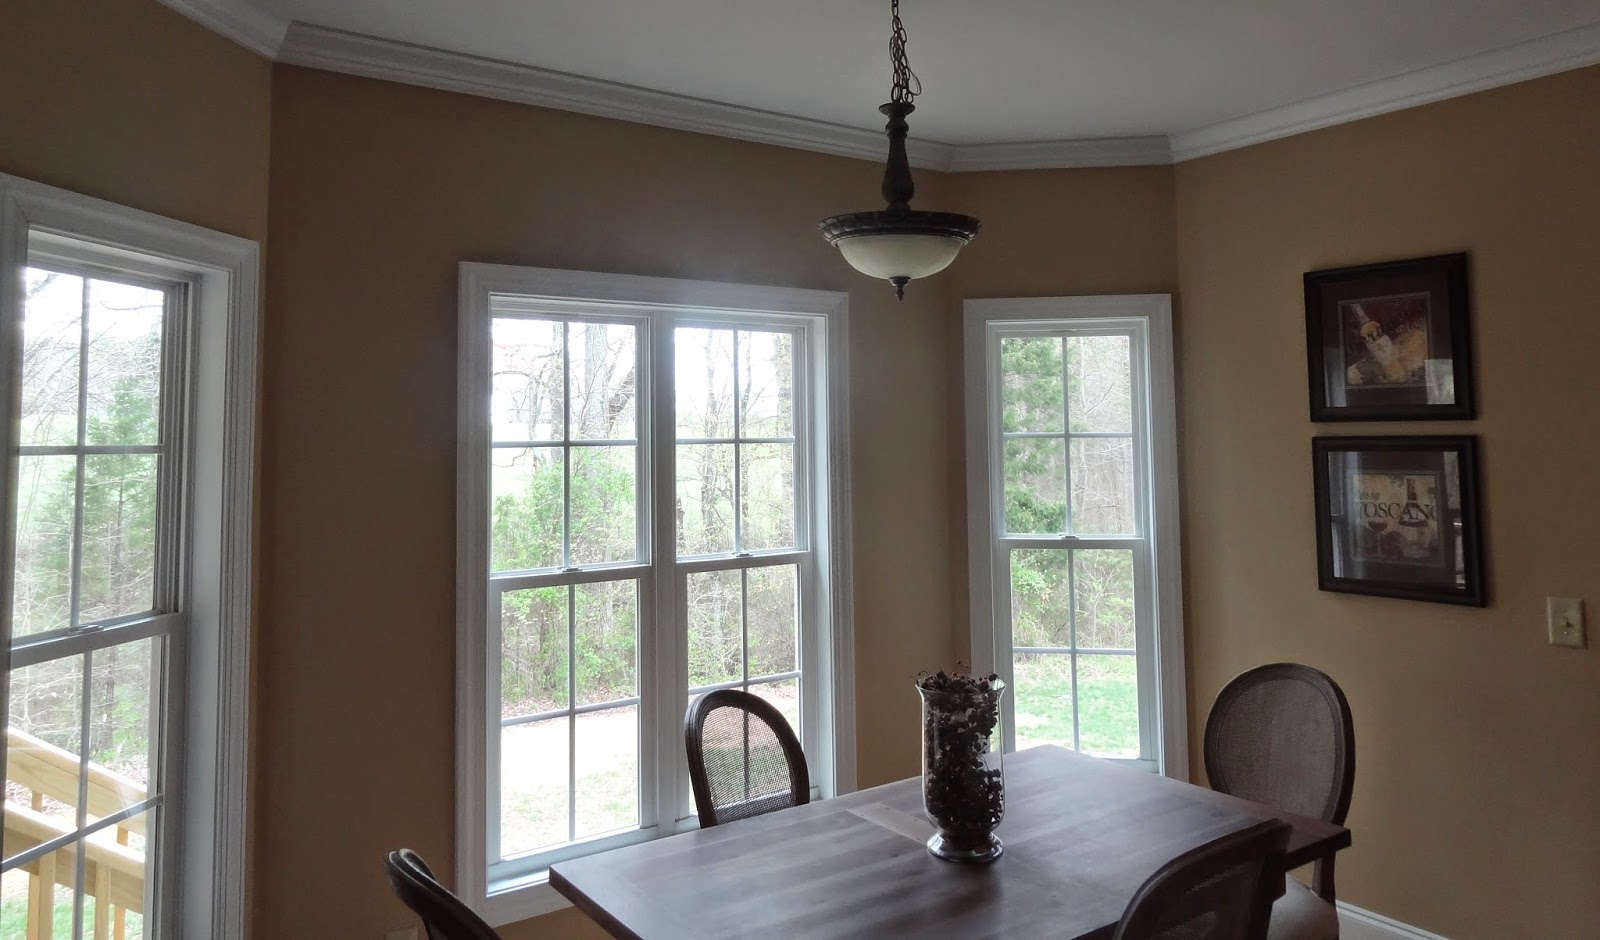 Far Left U2013 Kitchen Valances Make The Windows Feel Taller. In This Living  Room, The Transom Windows Are Larger Than Most. If This Is Something Your  Builder ...